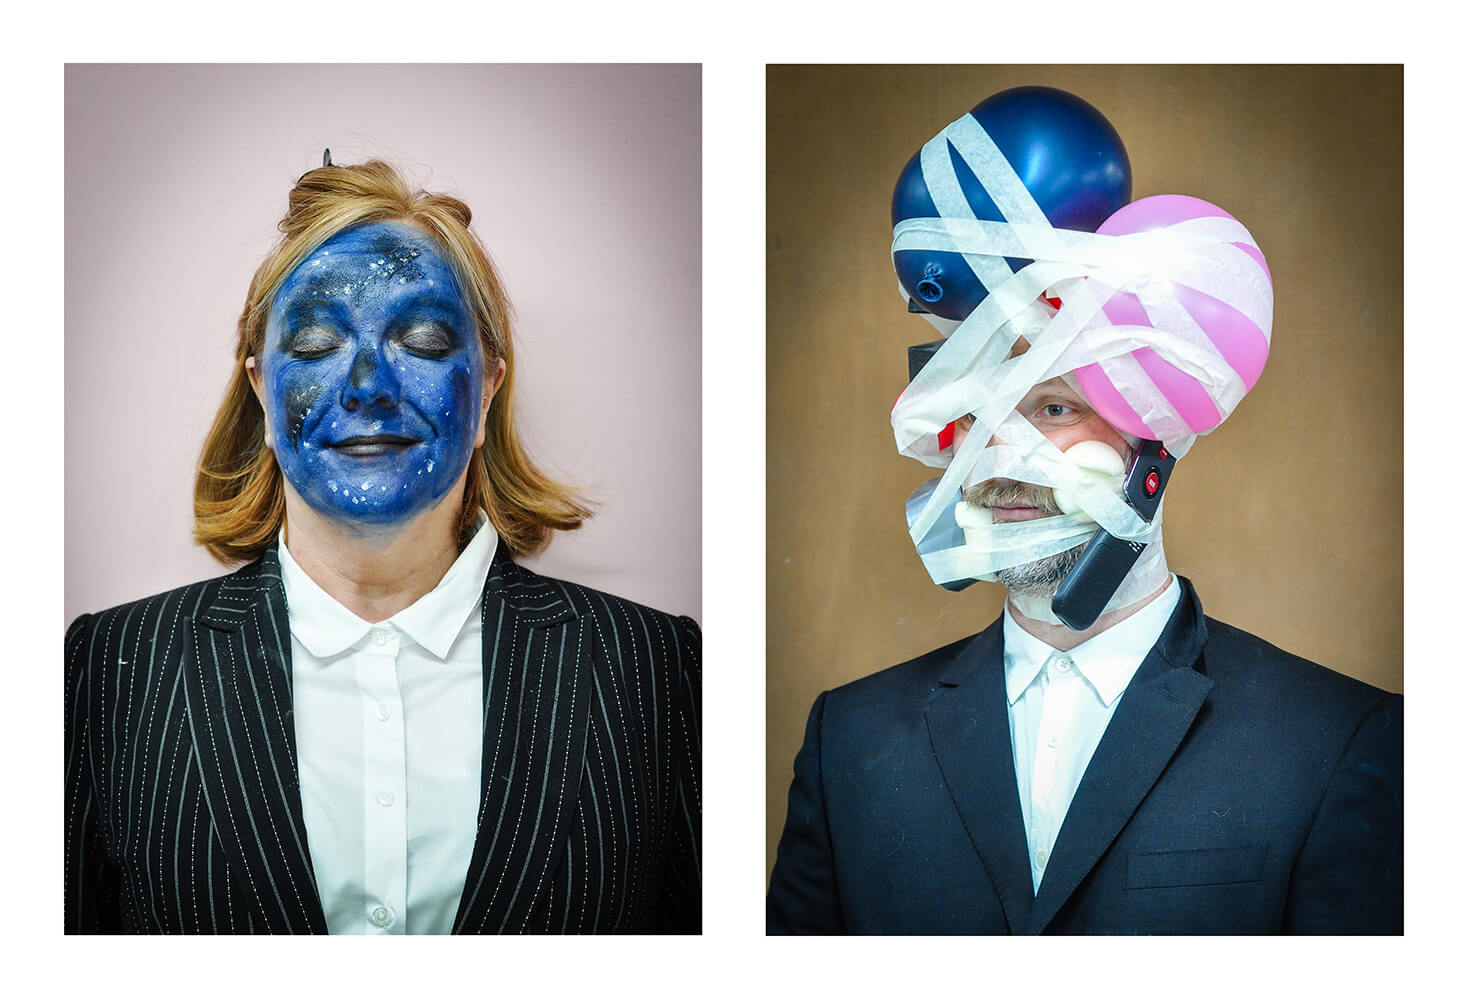 A woman with a blue painted face and a man with balloons taped to his face